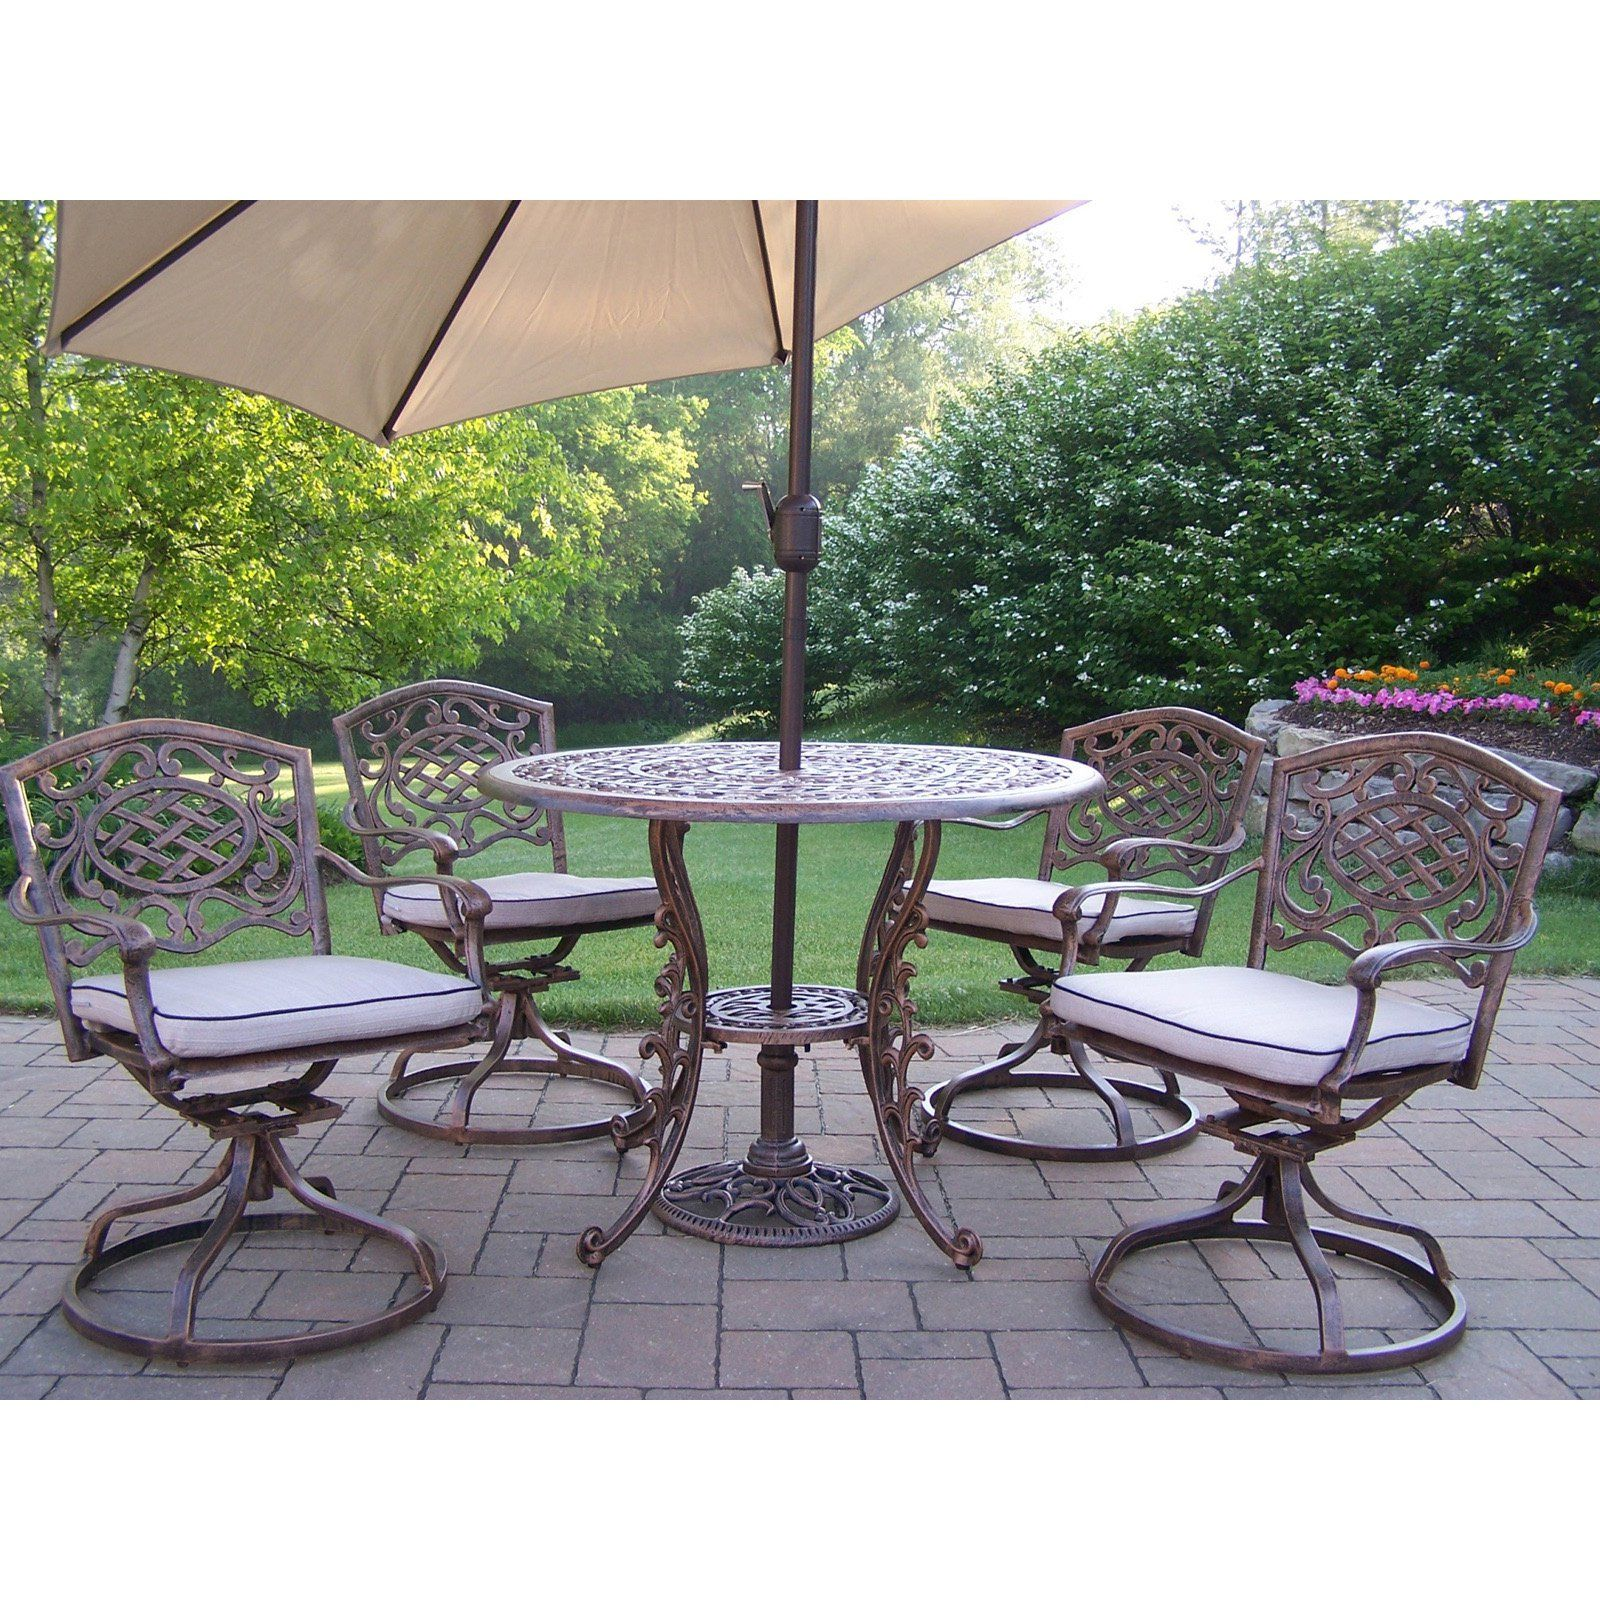 Outdoor Oakland Living Mississippi Patio Dining Set Seats 4 In